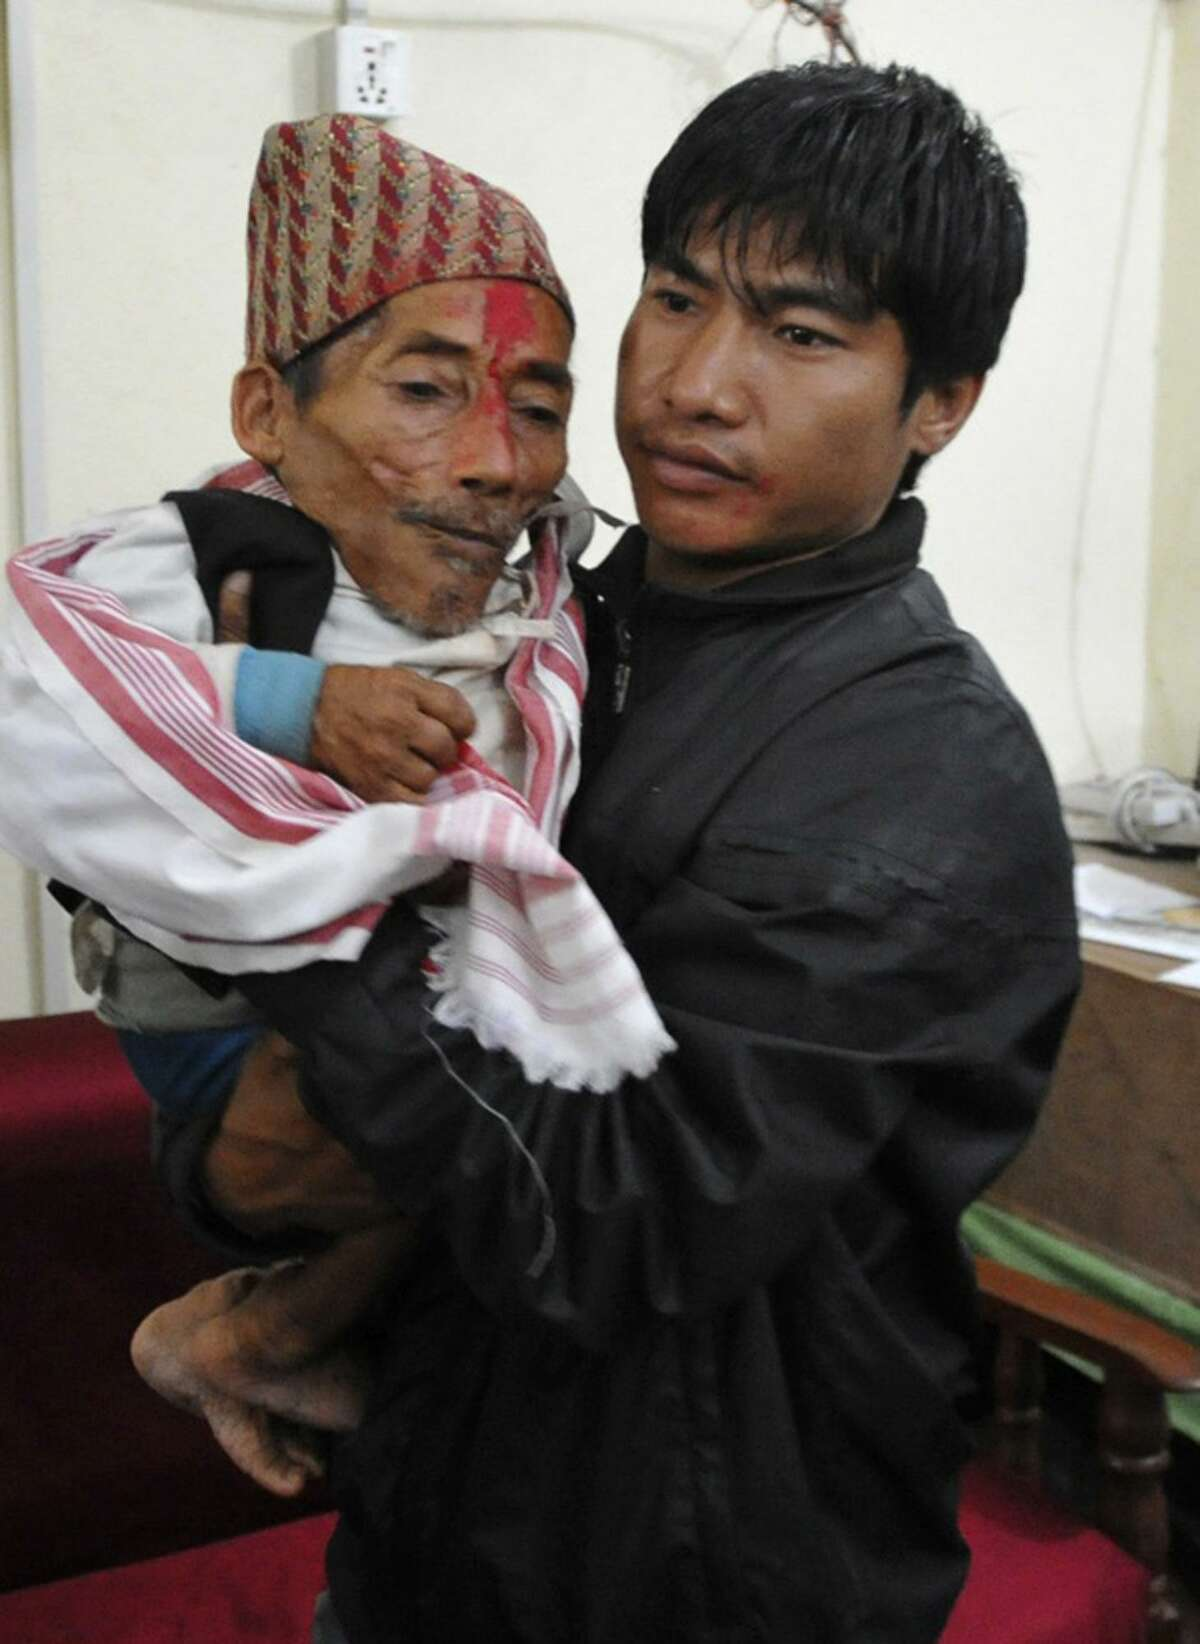 A relative carries Nepalese Chandra Bahadur Dangi, 72, who claims to be only 22 inches tall, in Nepalgunj, Nepal, Tuesday. Dangi is hoping to prove to Guinness World Records that he's the world's shortest man. Guinness World Records currently recognizes Junrey Balawing of the Philippines, who is 23.5 inches tall, as the shortest man in the world. (AP Photo/Subrot Neupane)